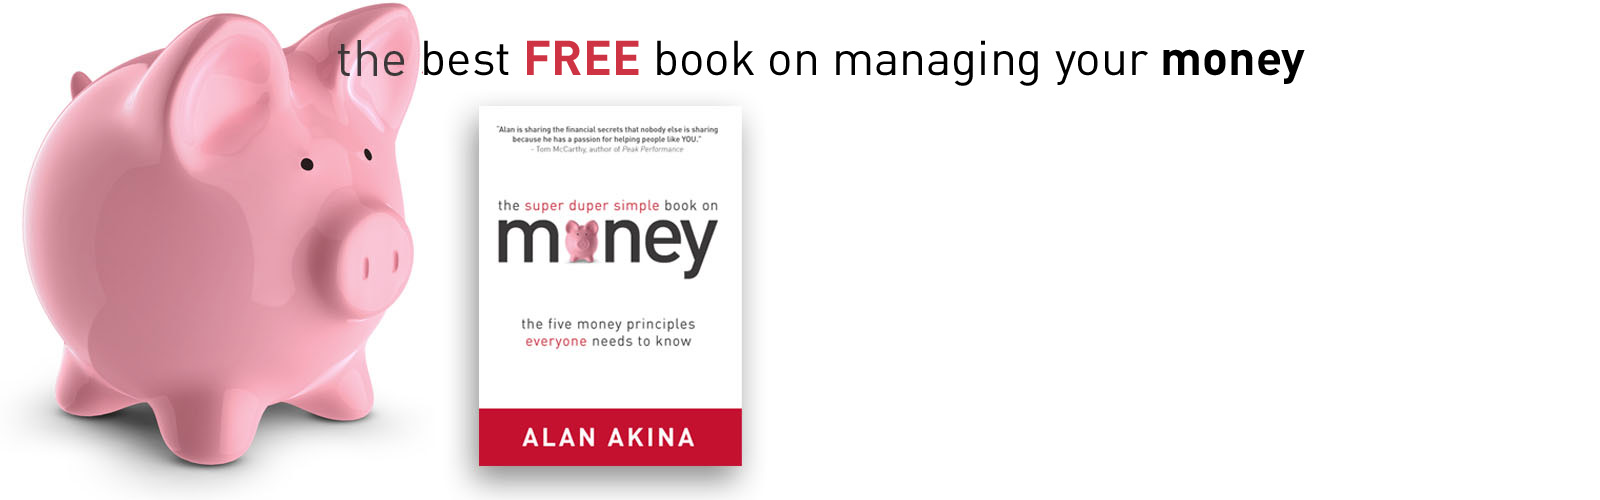 The Super Duper Simple Book on Money by Alan Akina. Official eBook launch coming May 1, 2012.